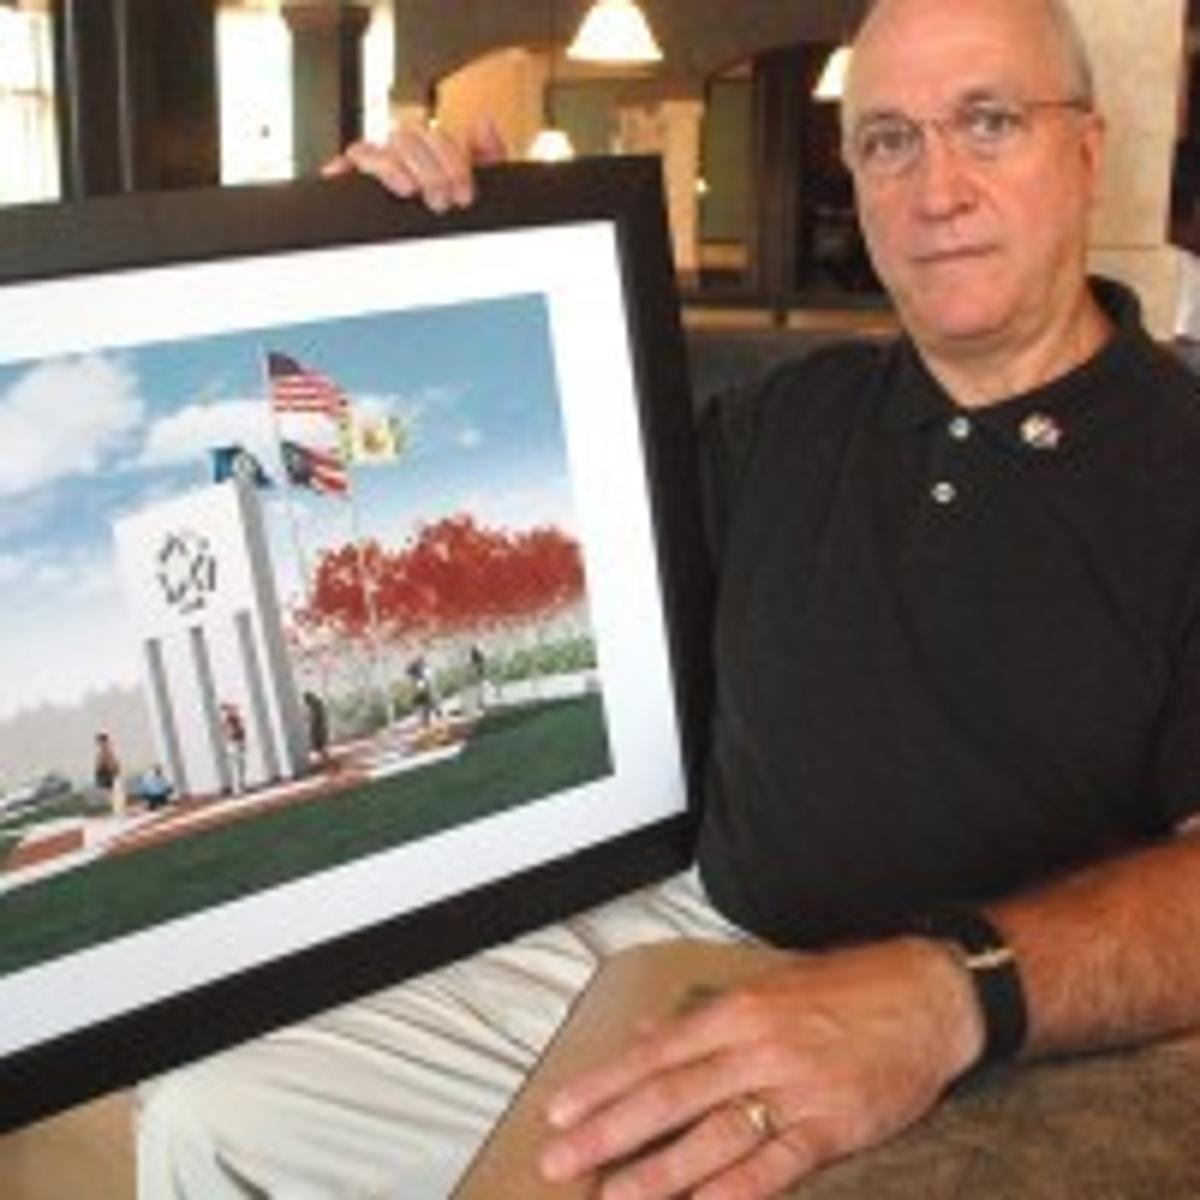 Flag creator wants to build monument to 9/11 memory